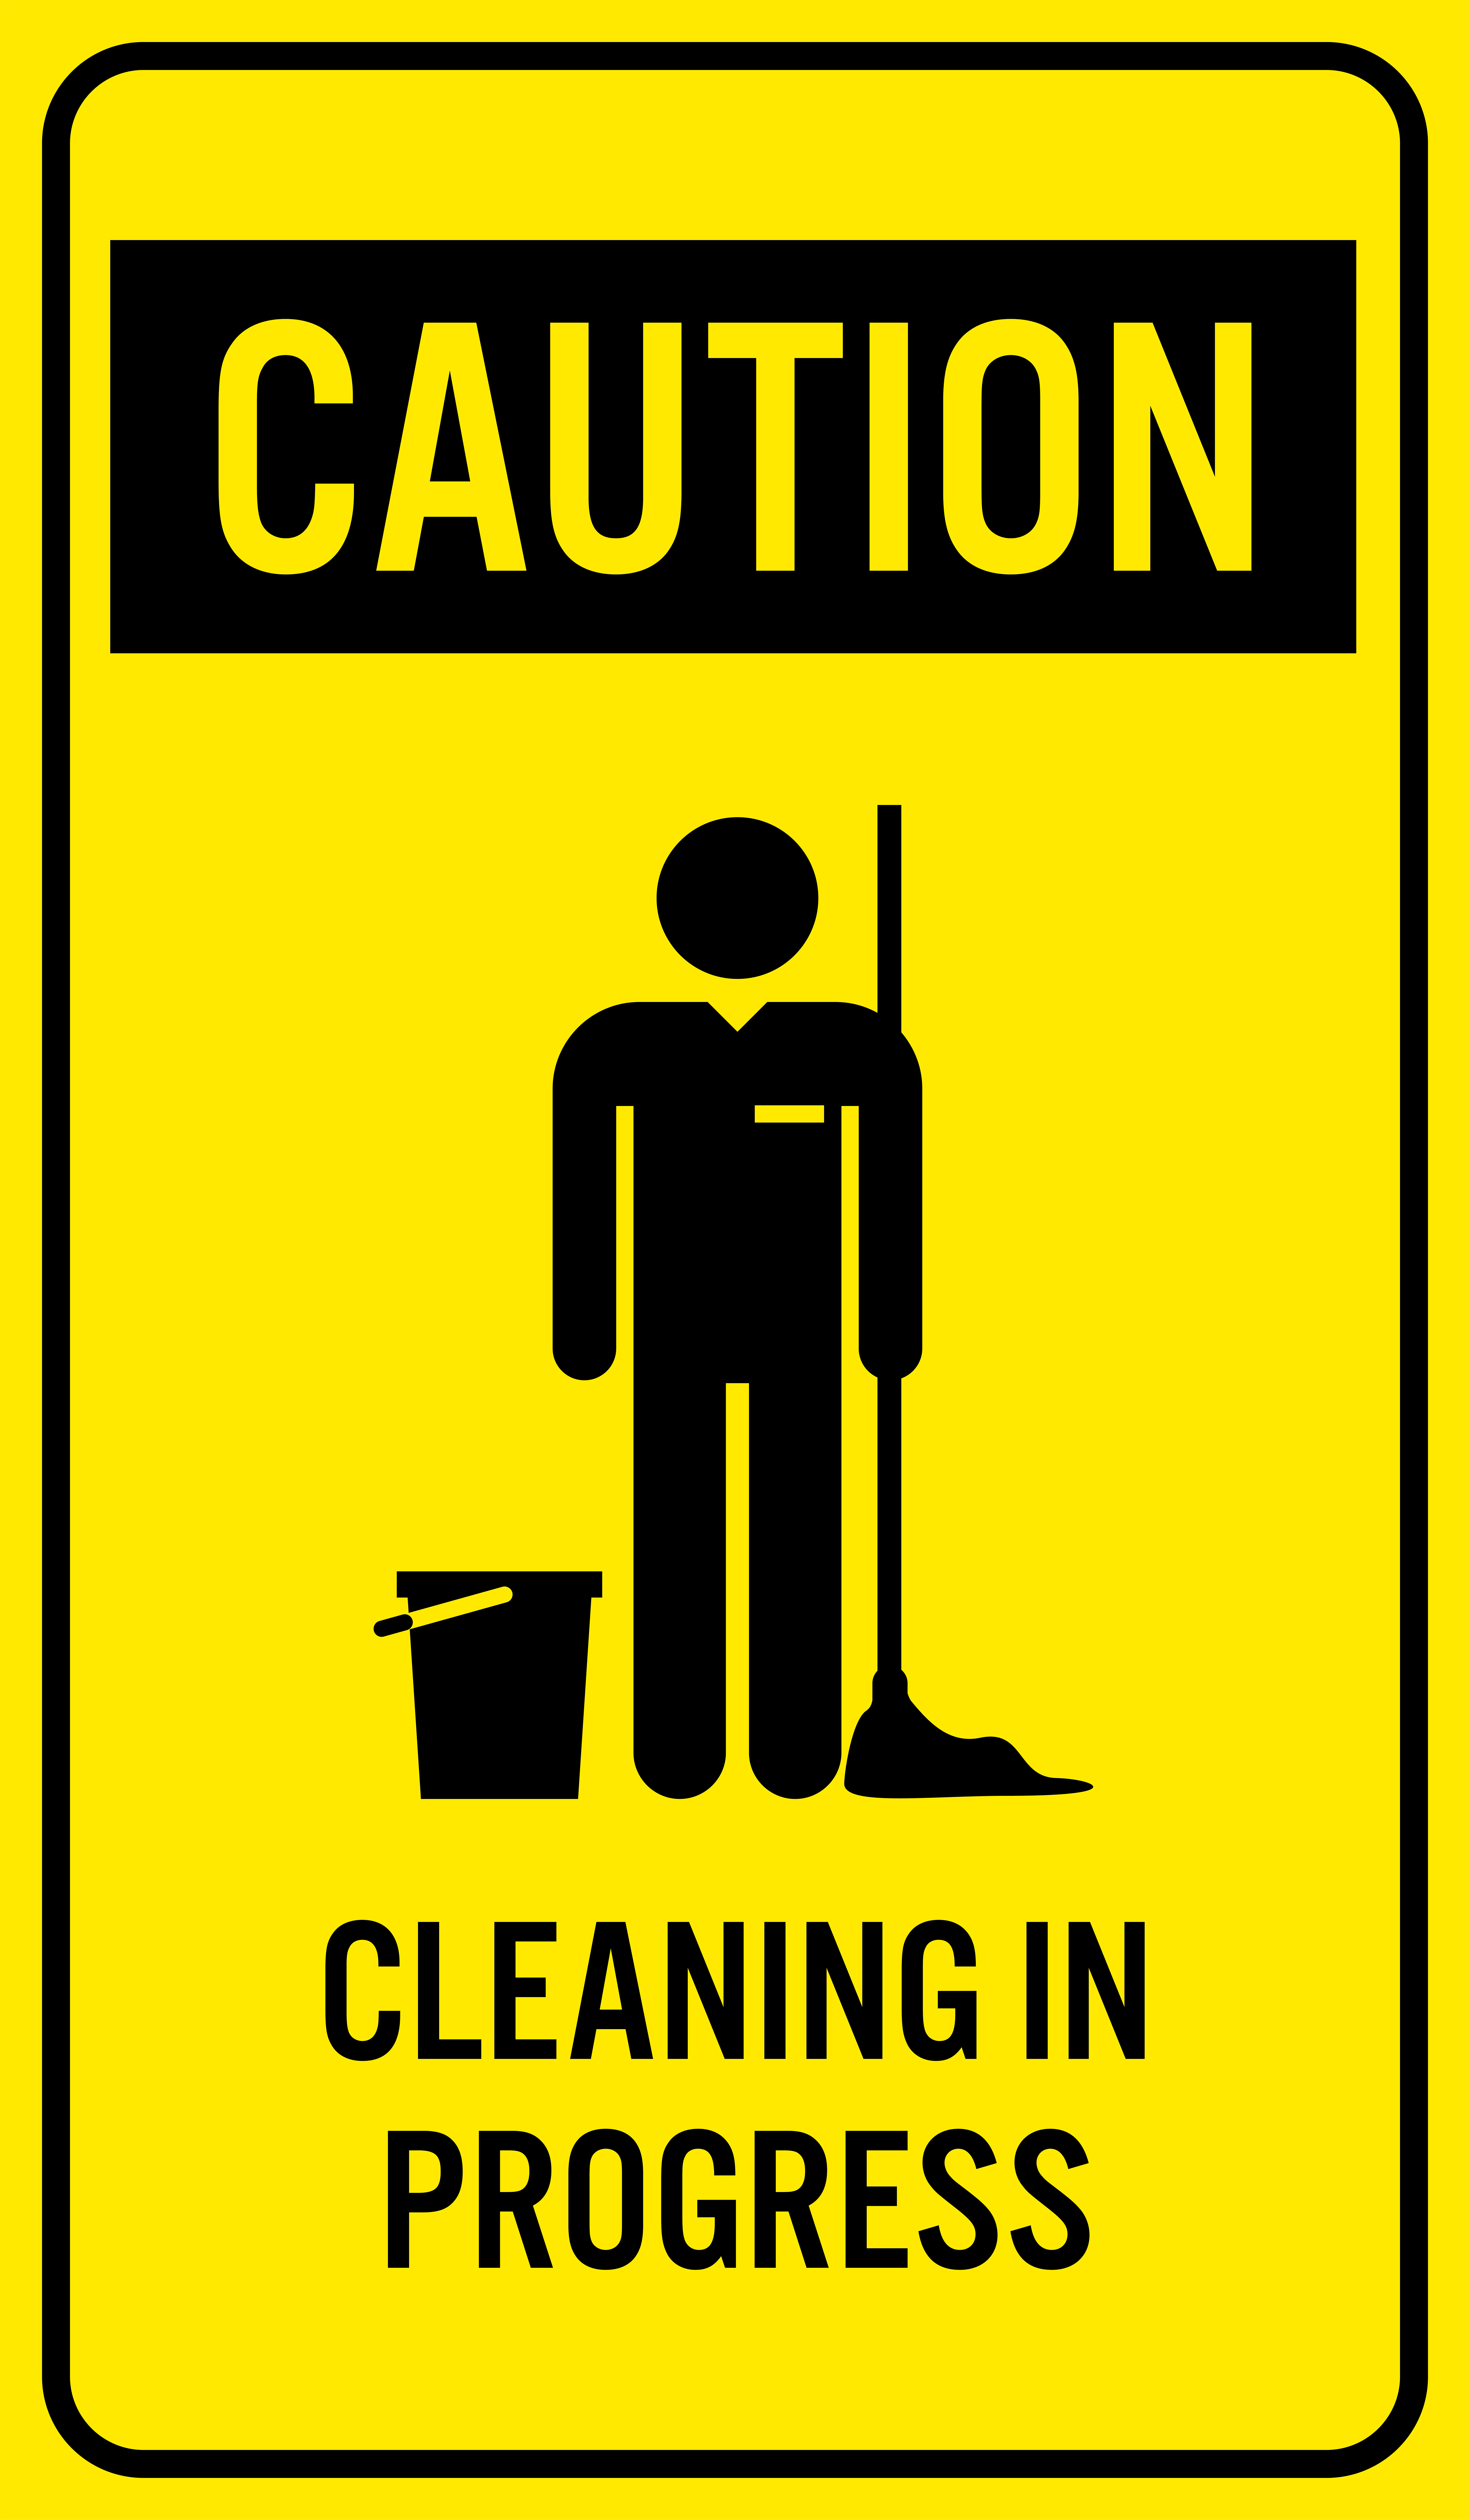 Caution clipart situation. Cleaning in progres sign